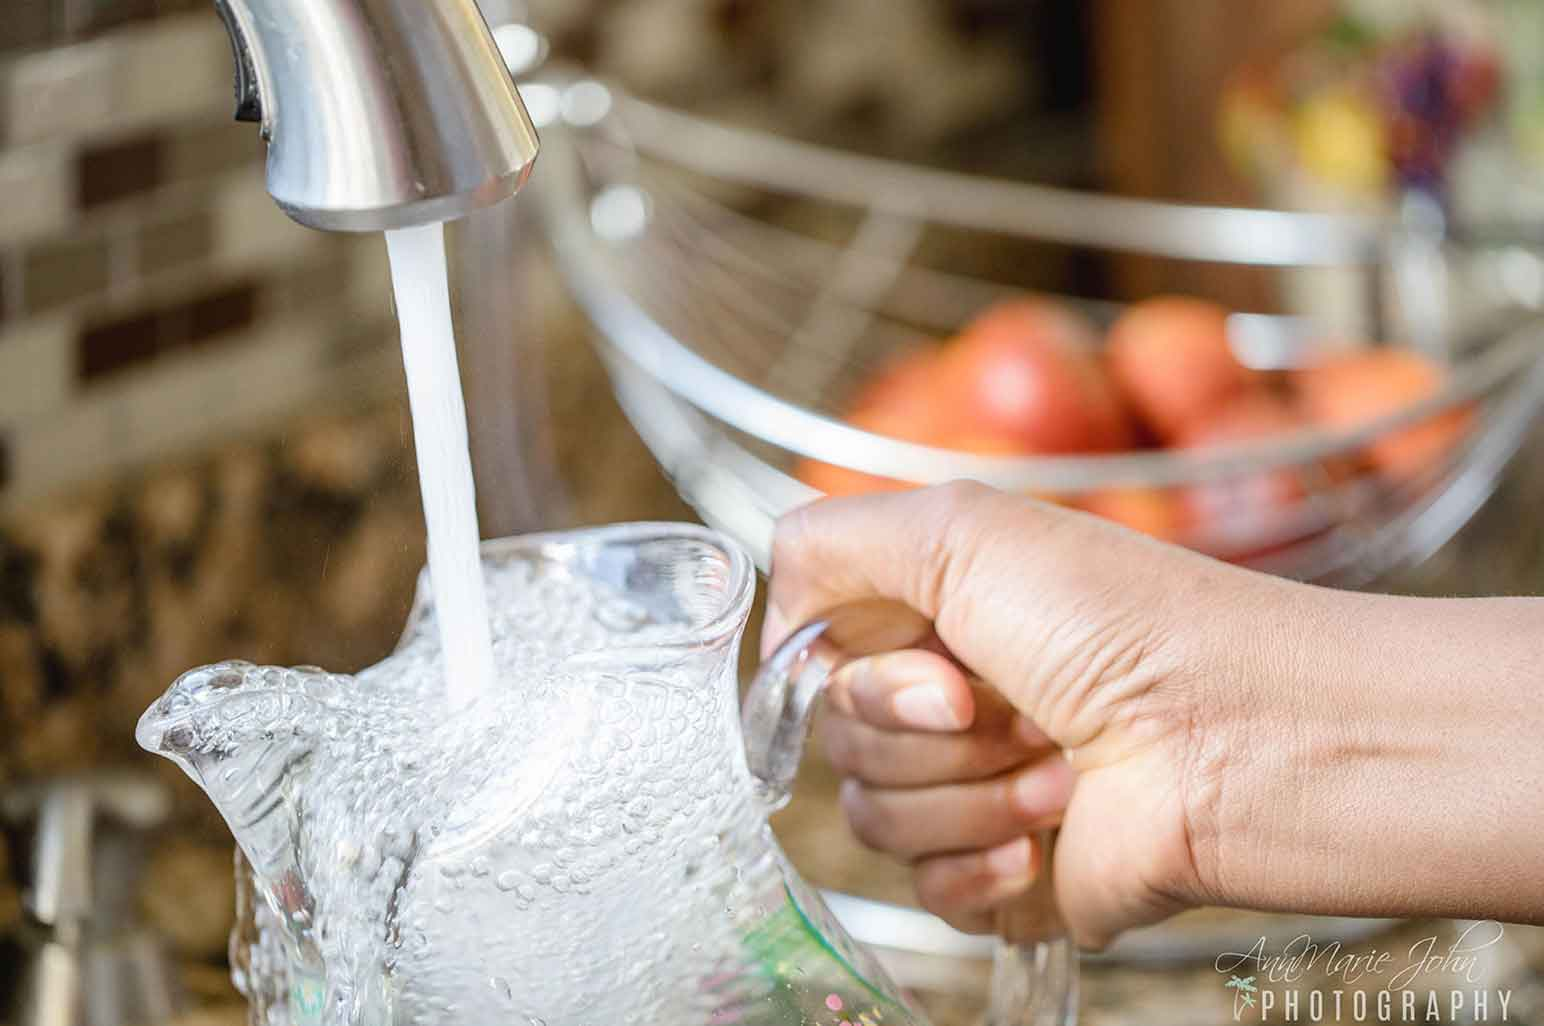 Contaminants Lurking in Your Tap Water